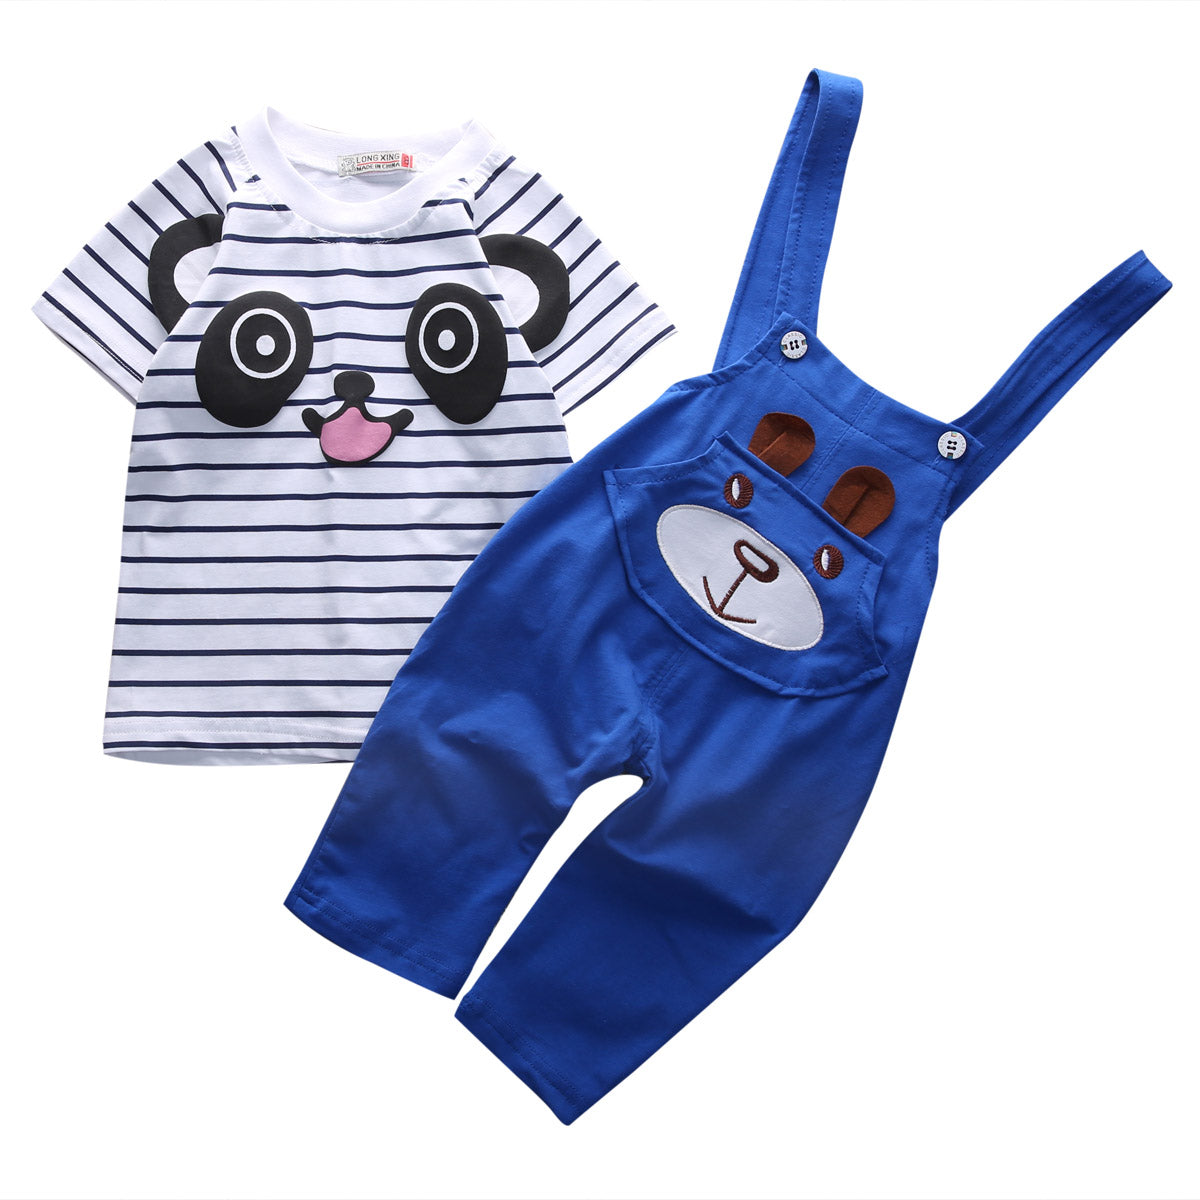 8e6539fdbbab7 Pudcoco Kids Denim Dungaree T shirt Set For Baby Girls Boys Summer Clothes  Bib Overalls Trousers with Braces Cute Design Tees